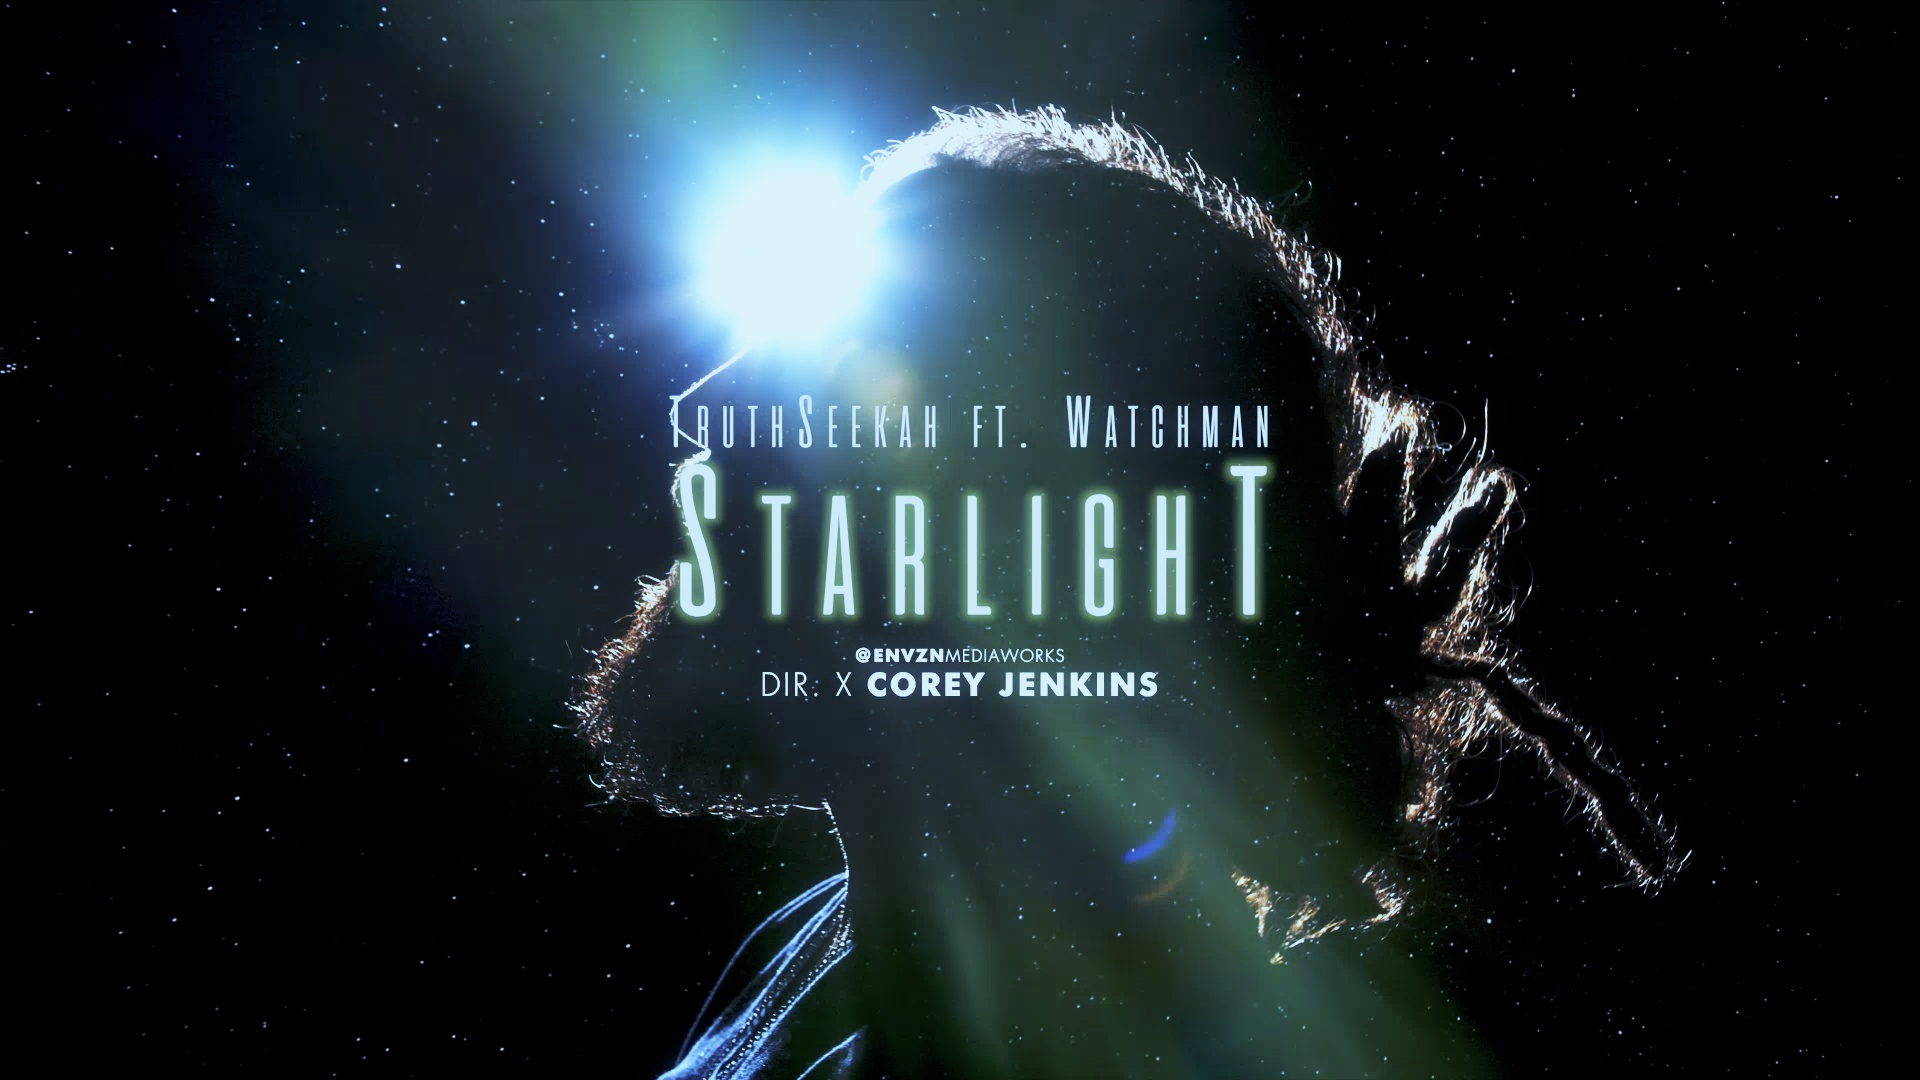 STARLIGHT | TruthSeekah & Watchman | Official Video | Seer